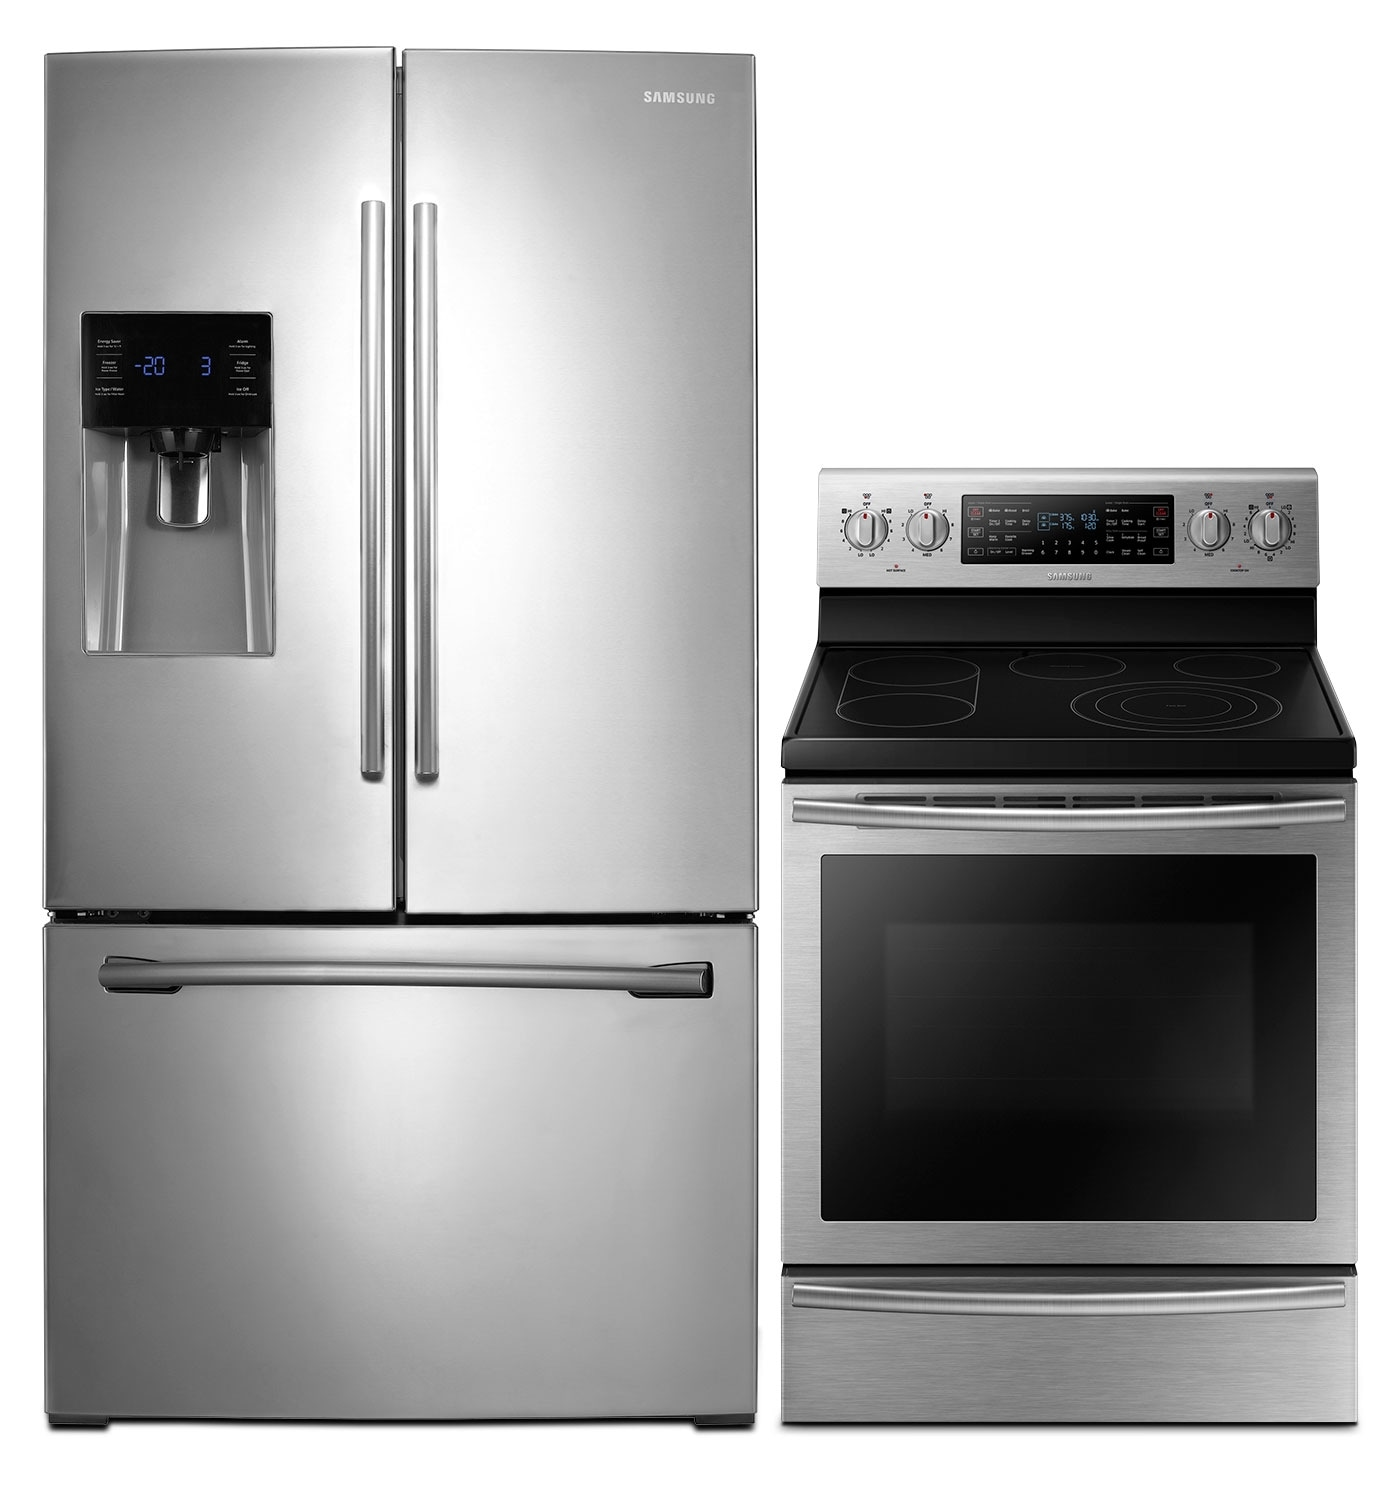 Samsung 26 Cu. Ft. French-Door Refrigerator and Flex Duo™ Electric Range - Stainless Steel